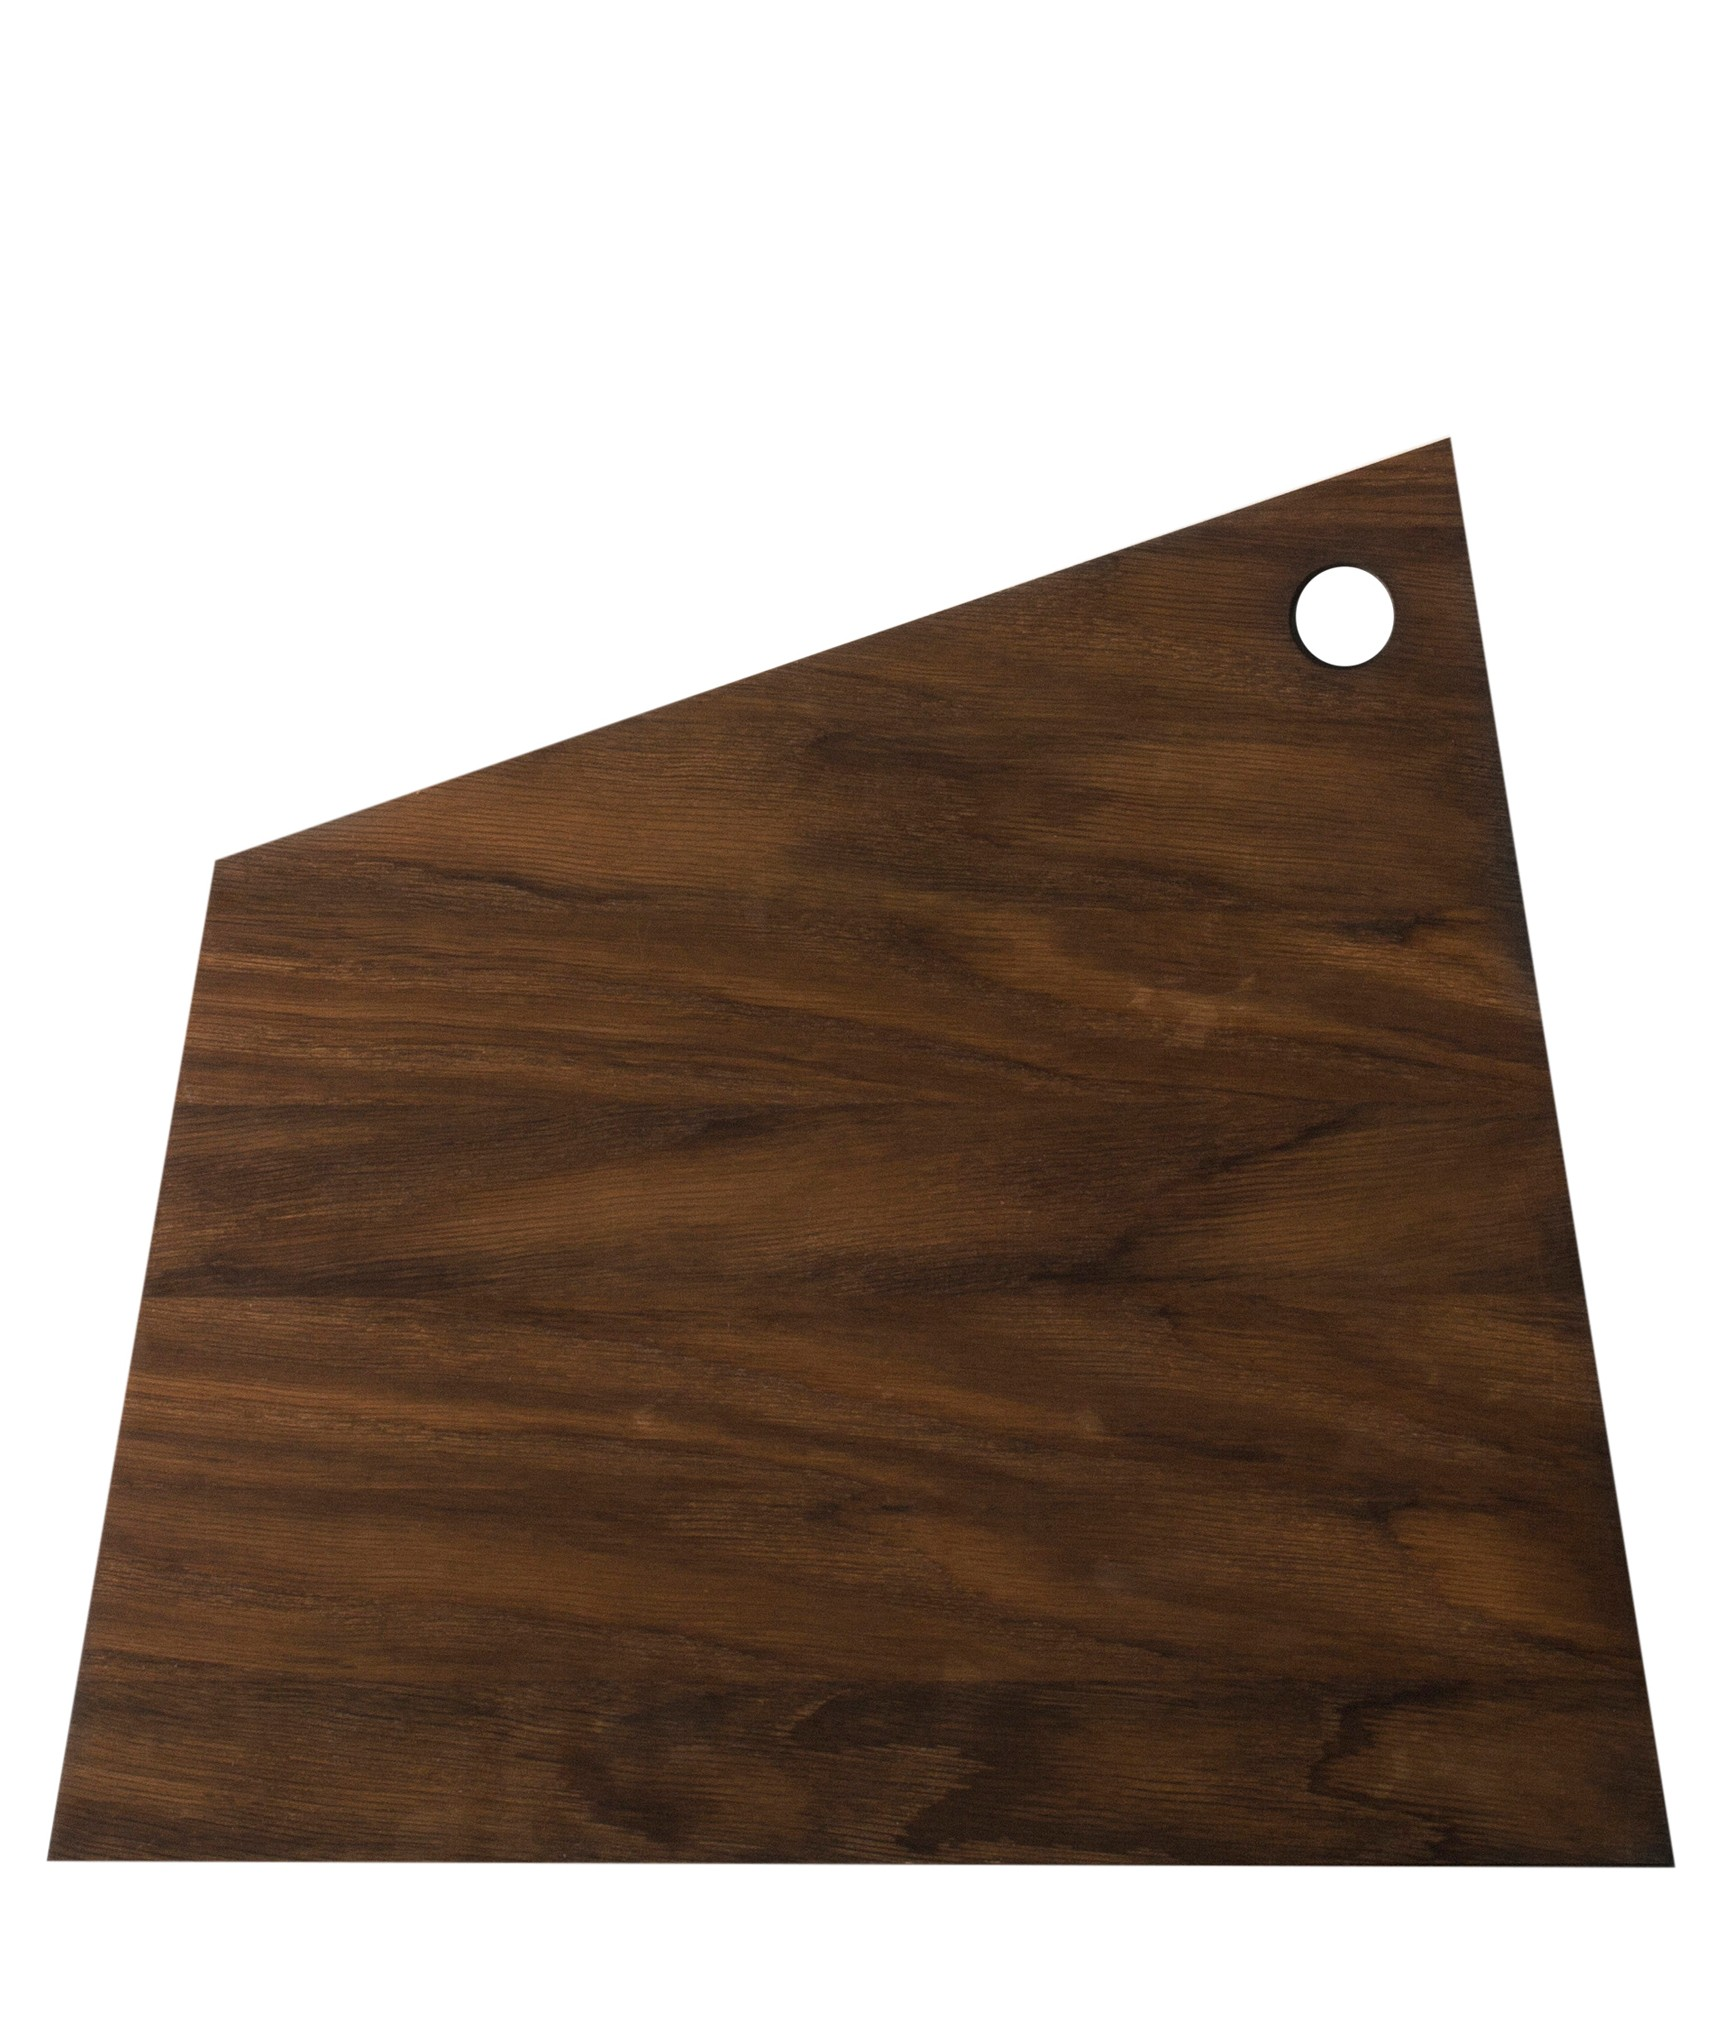 ferm living asymmetric cutting board large living green living produkte kaufen bei glore glore. Black Bedroom Furniture Sets. Home Design Ideas